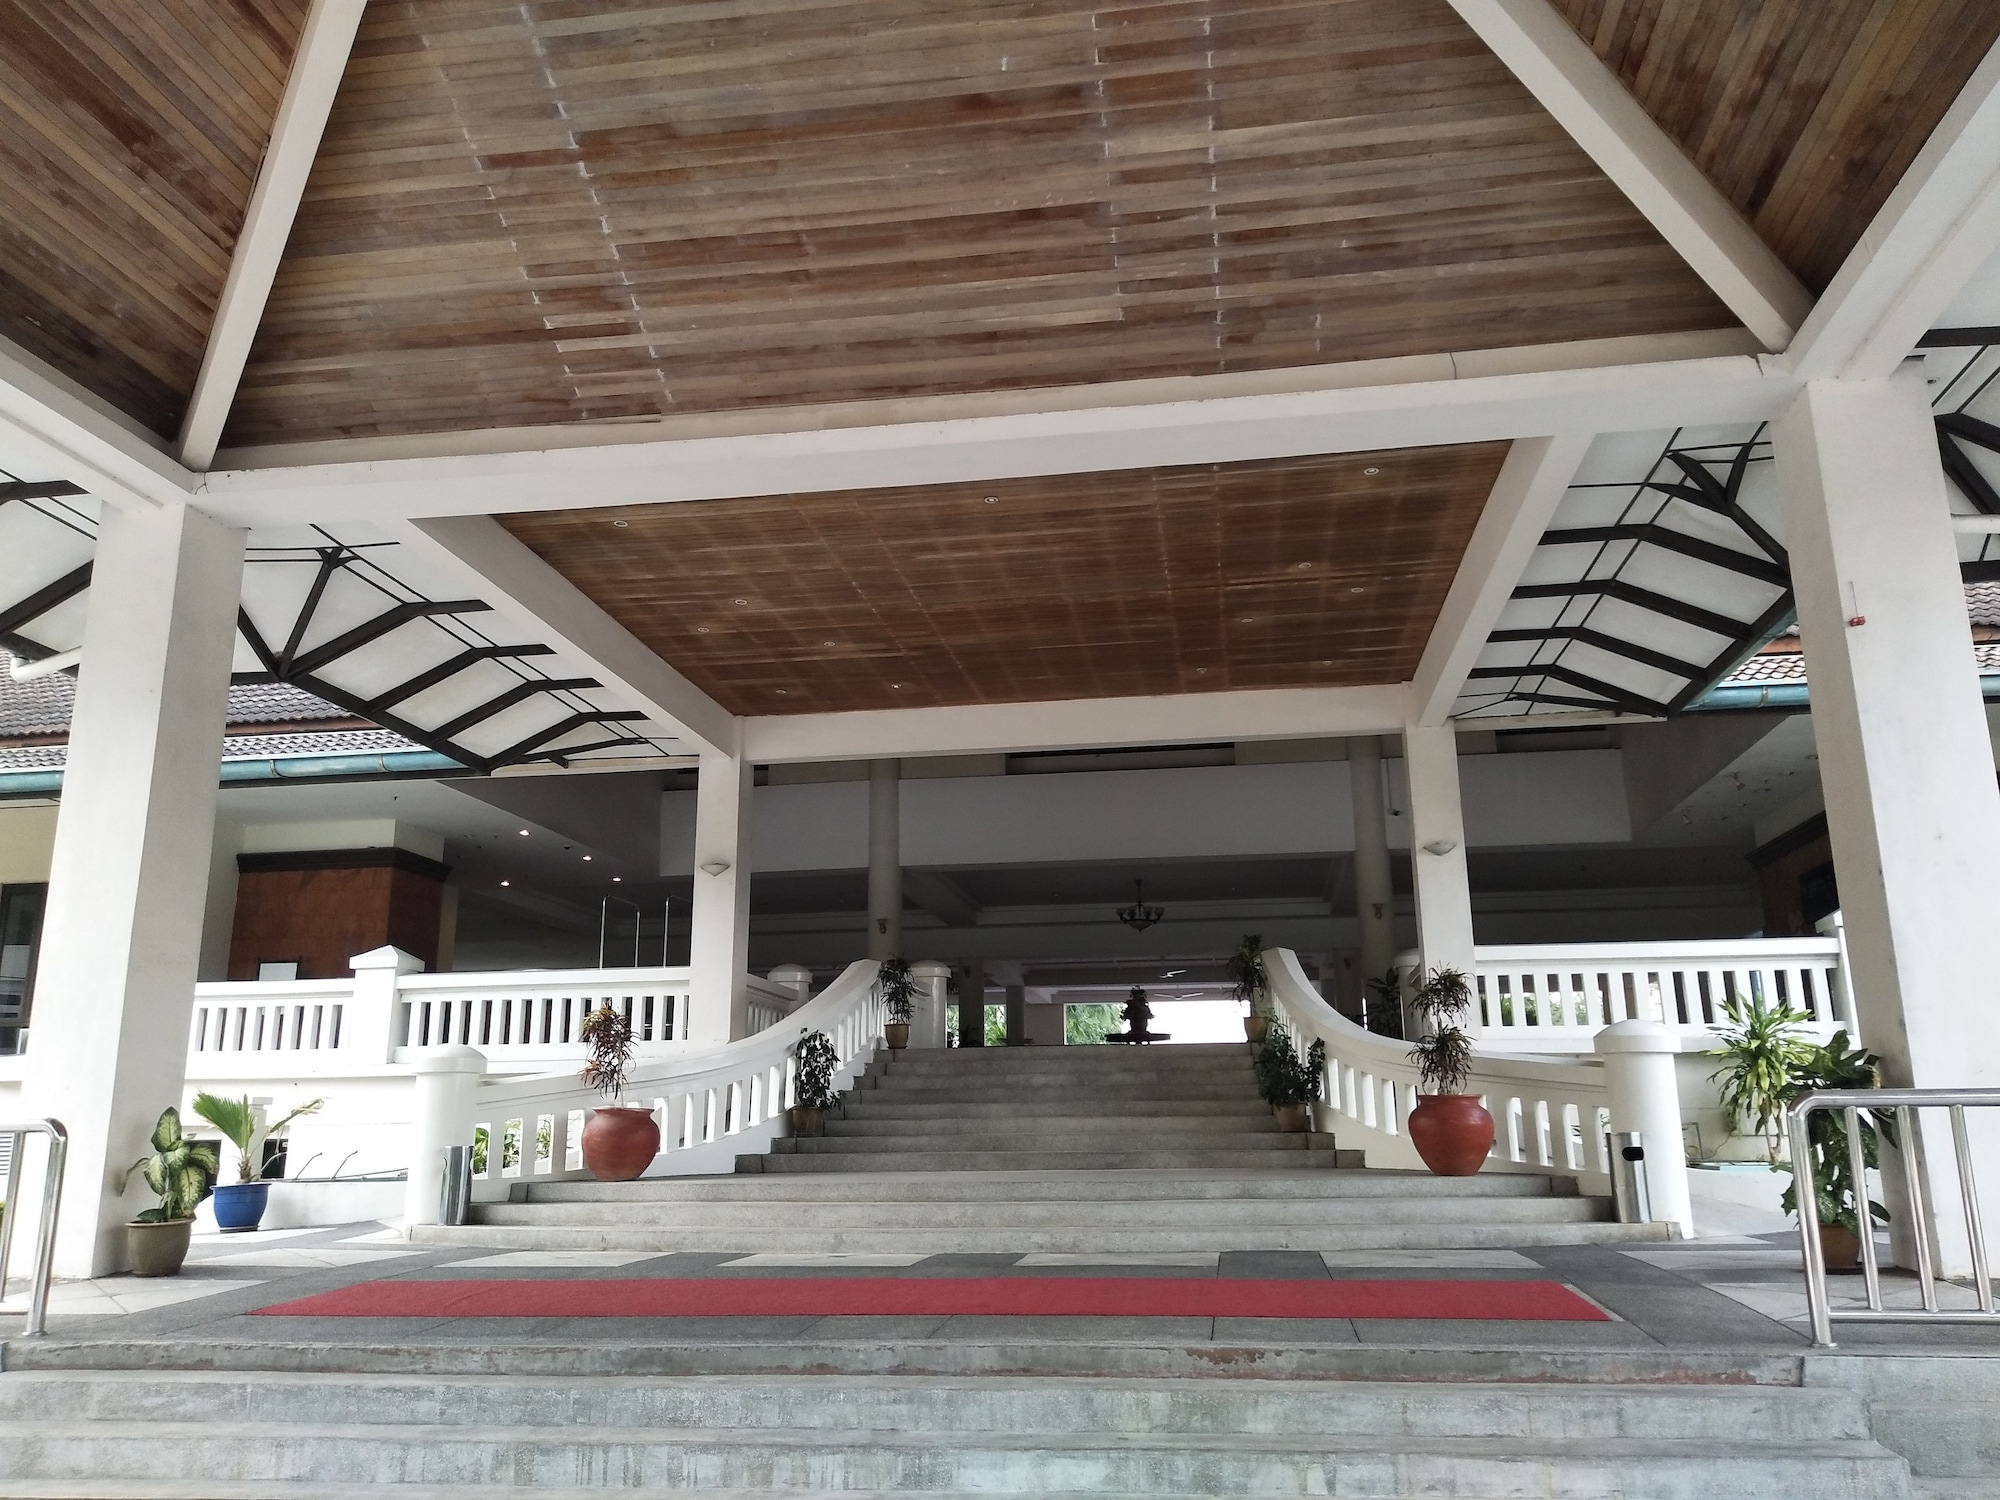 The Orient Star Resort Lumut, Manjung